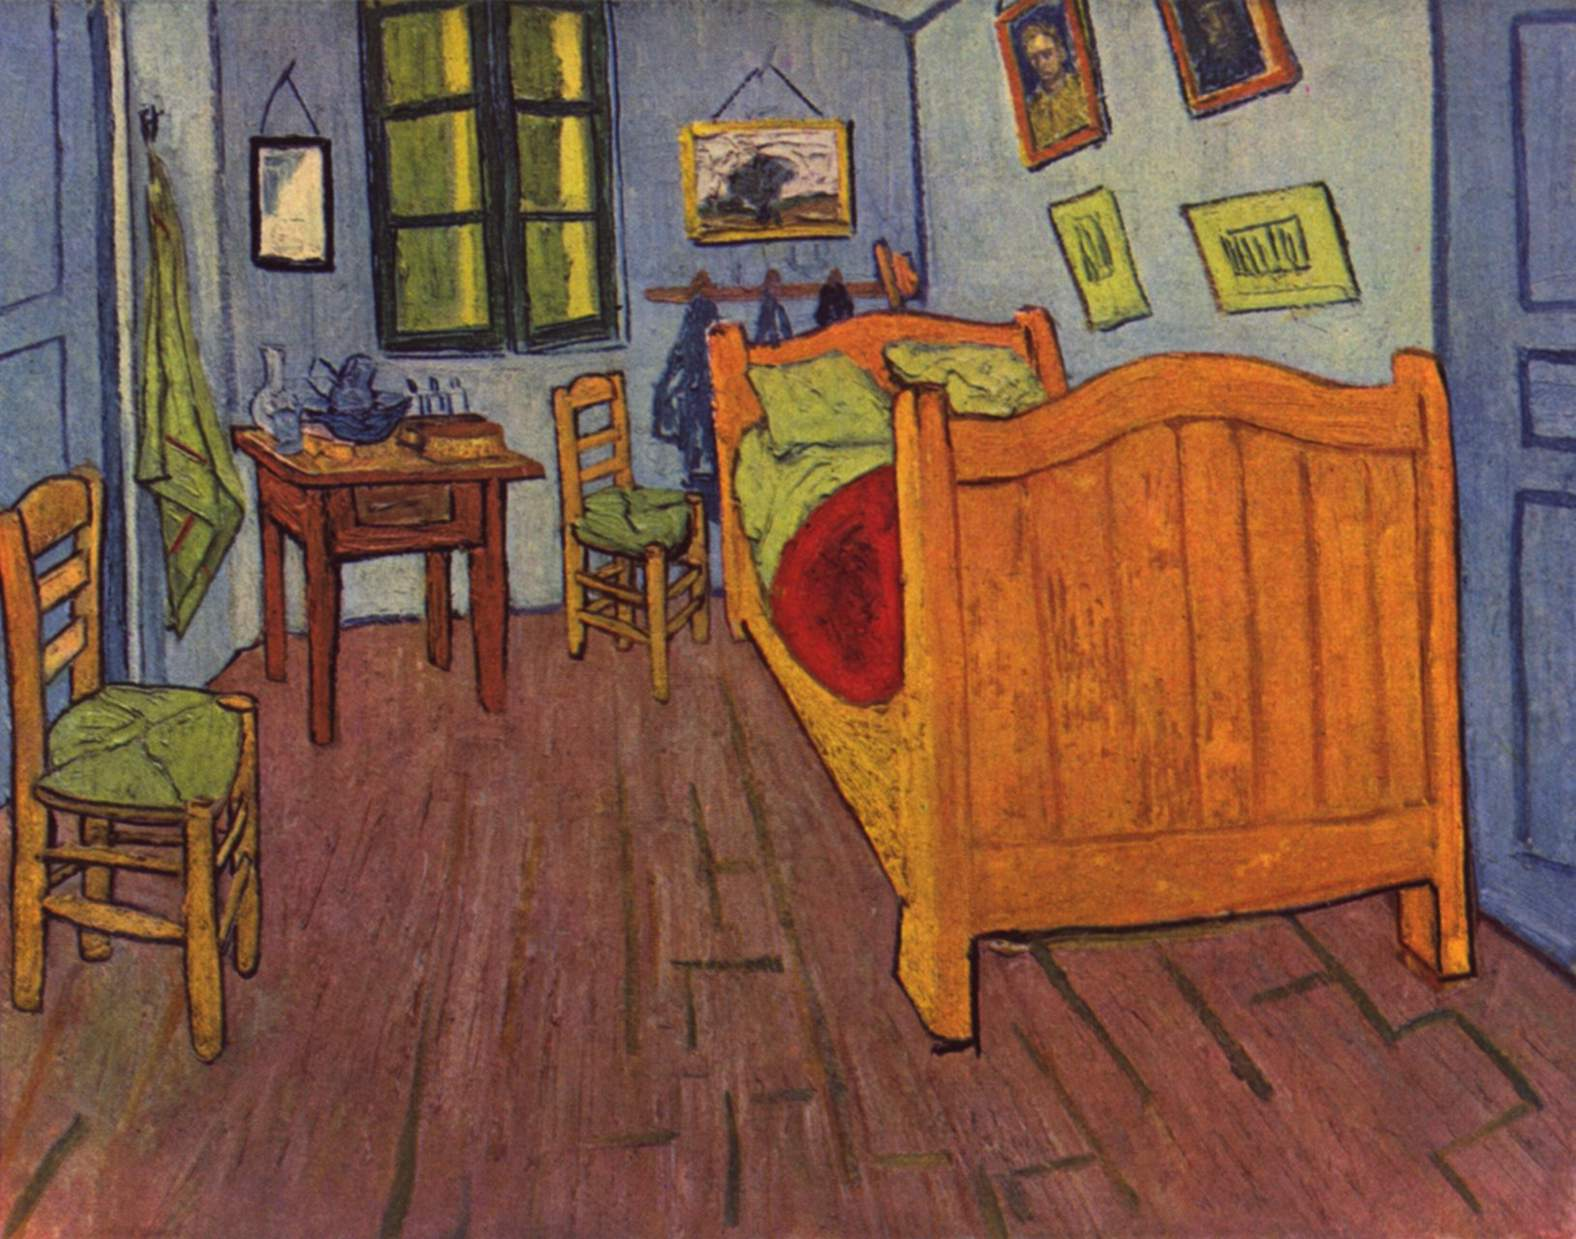 File:Vincent Willem van Gogh 137.jpg - Wikimedia Commons